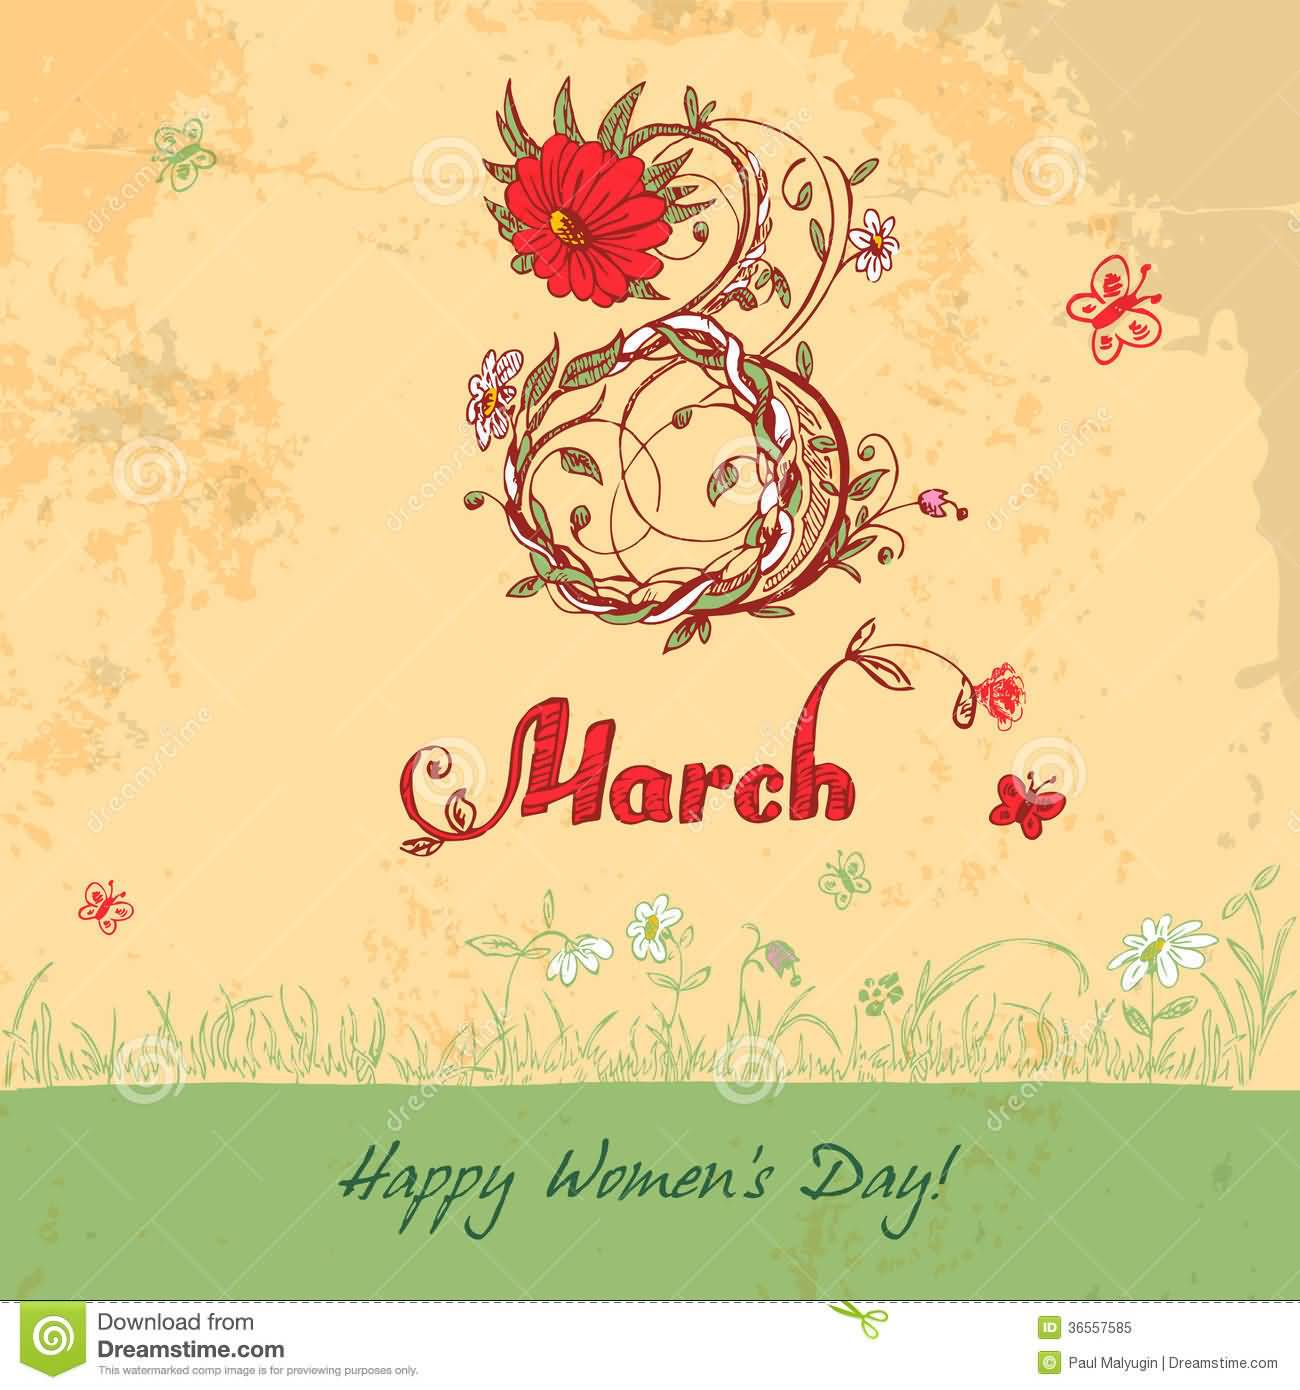 30 best womens day greeting card 8 march happy womens day vintage greeting card kristyandbryce Choice Image